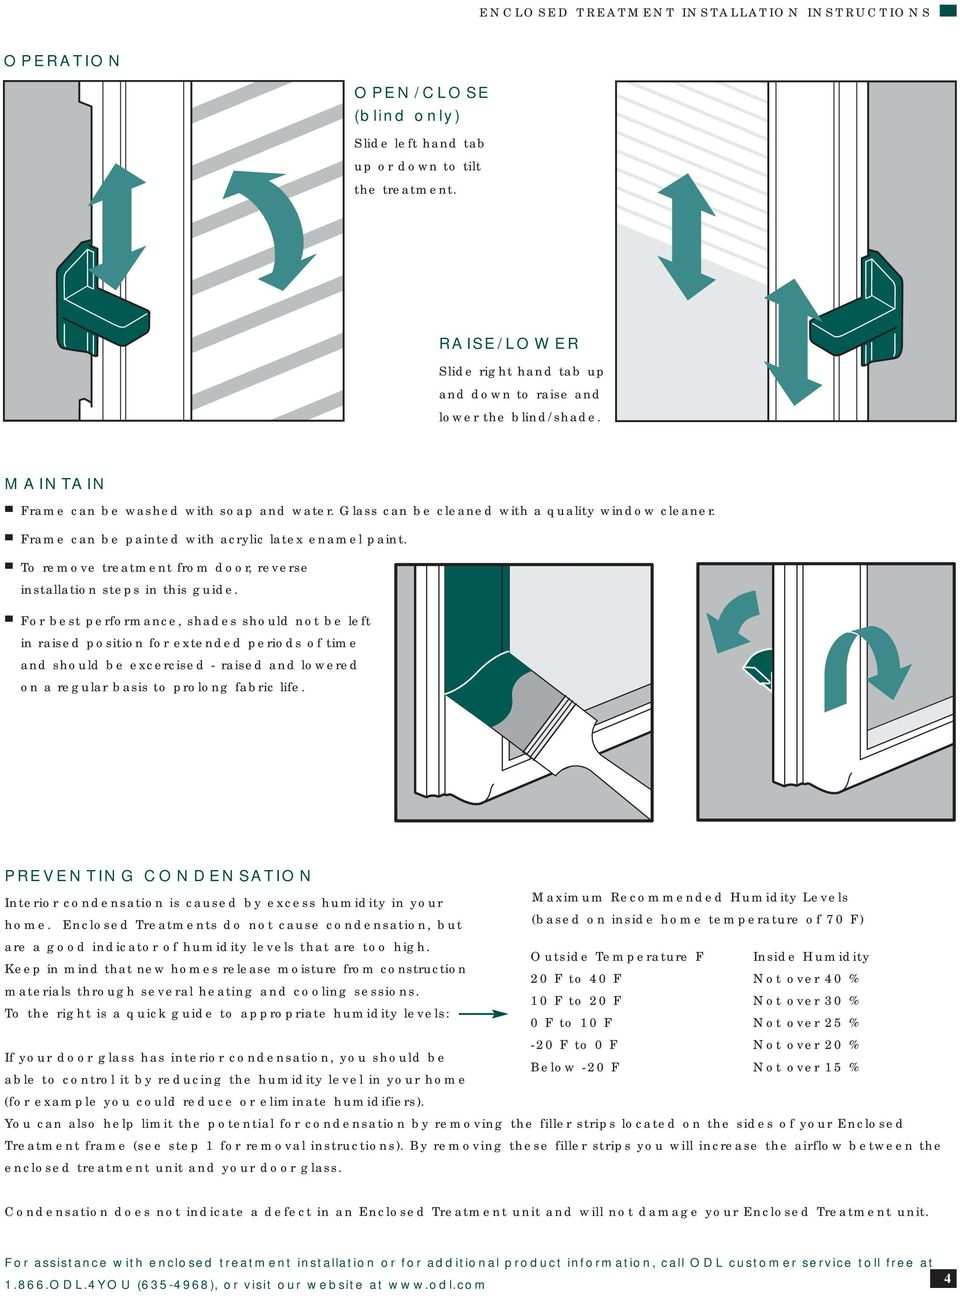 Frame can be painted with acrylic latex enamel paint. To remove treatment from door, reverse installation steps in this guide.